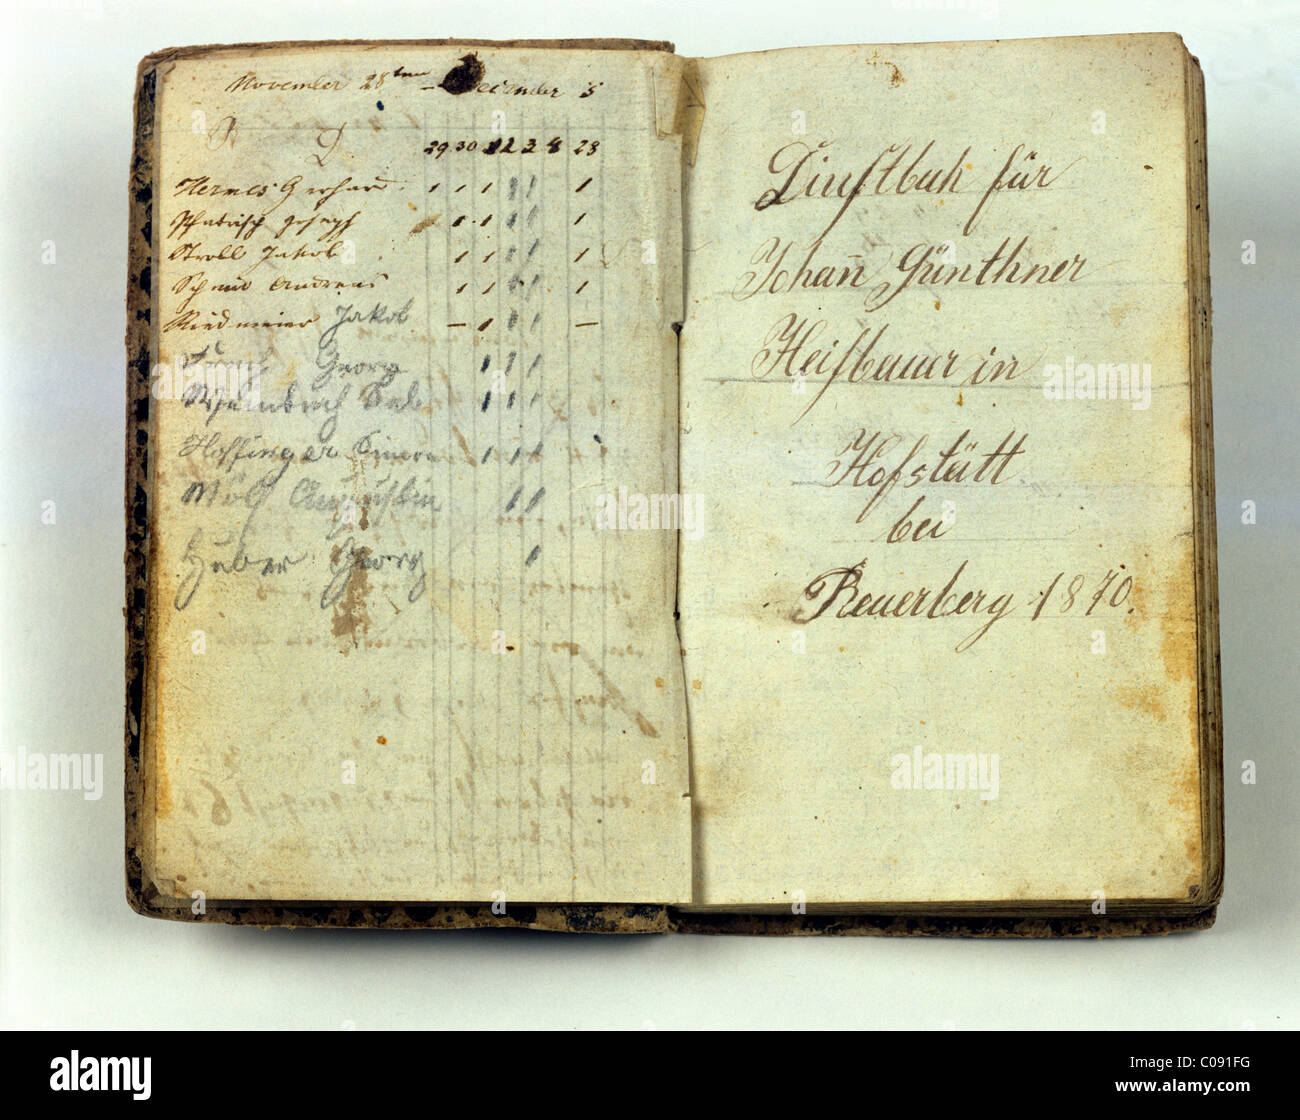 Title page from 1870, servant's book from Hofstett, Beuerberg, Upper Bavaria, Germany, Europe - Stock Image